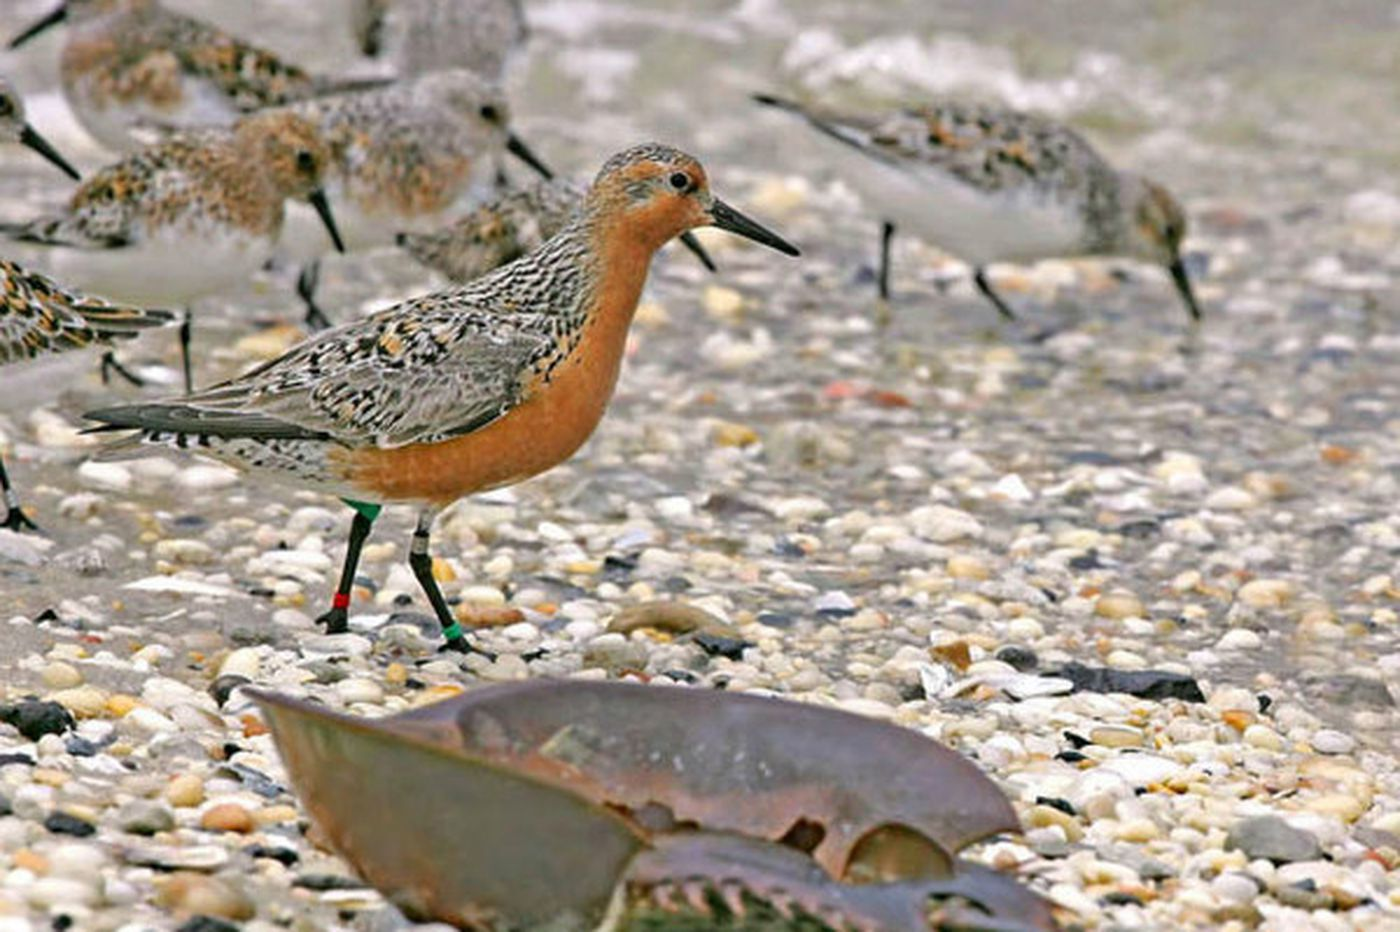 Concerns over red knots, horseshoe crabs, oysters spark debate